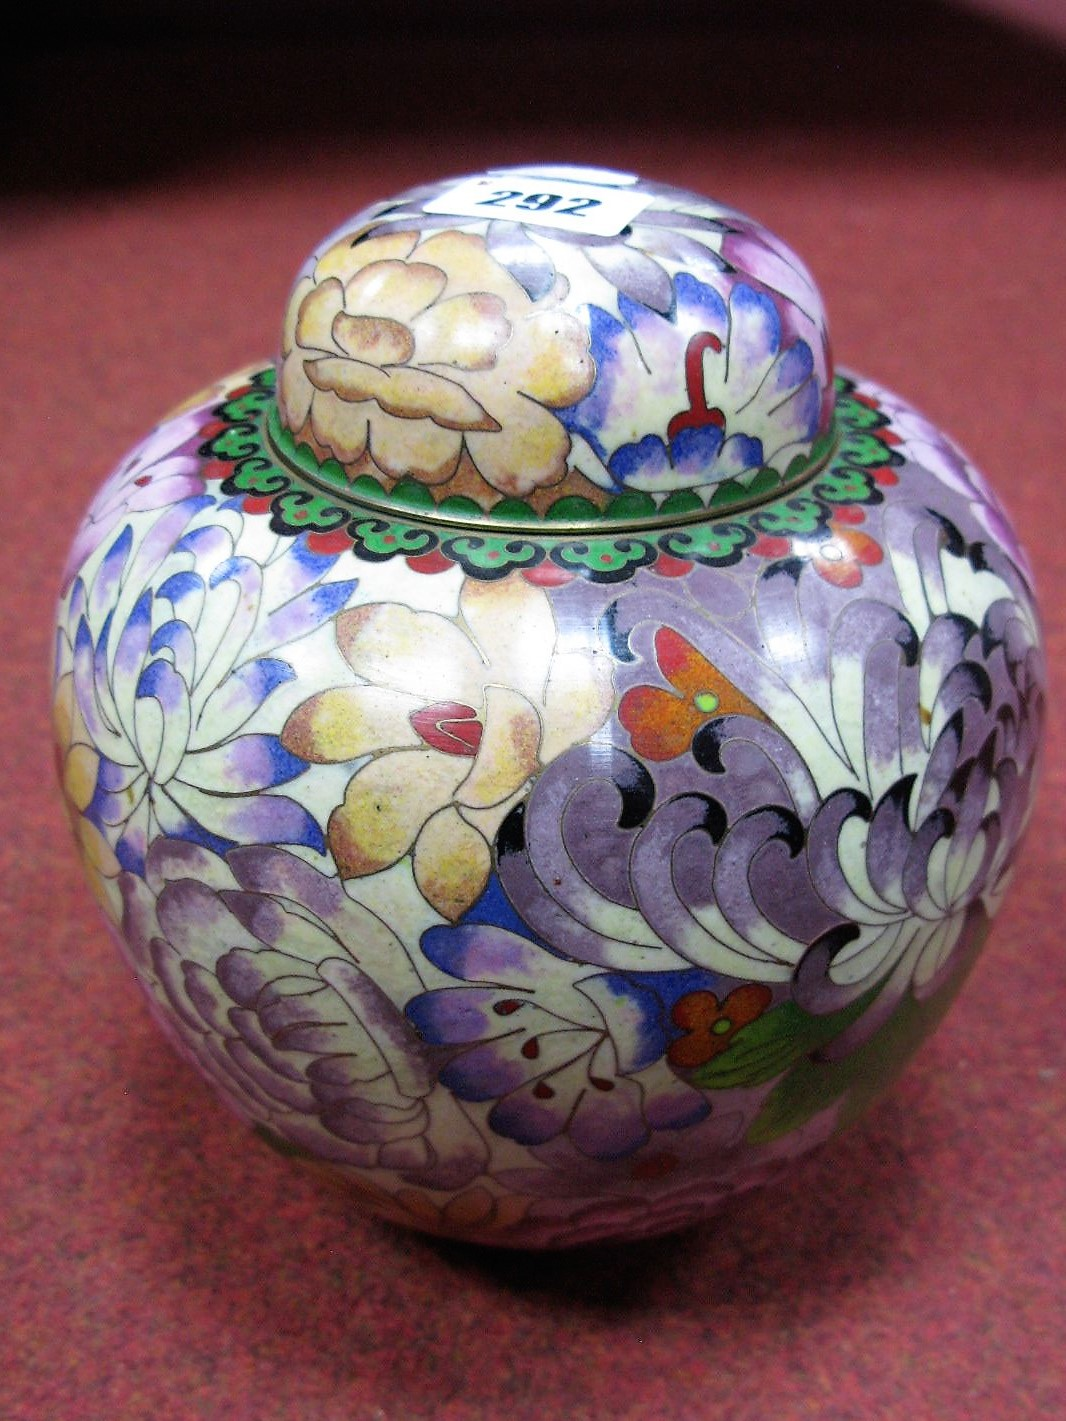 Lot 292 - A XX Century Cloisonné Ginger Jar and Cover, of globular form, decorated profusely with flower